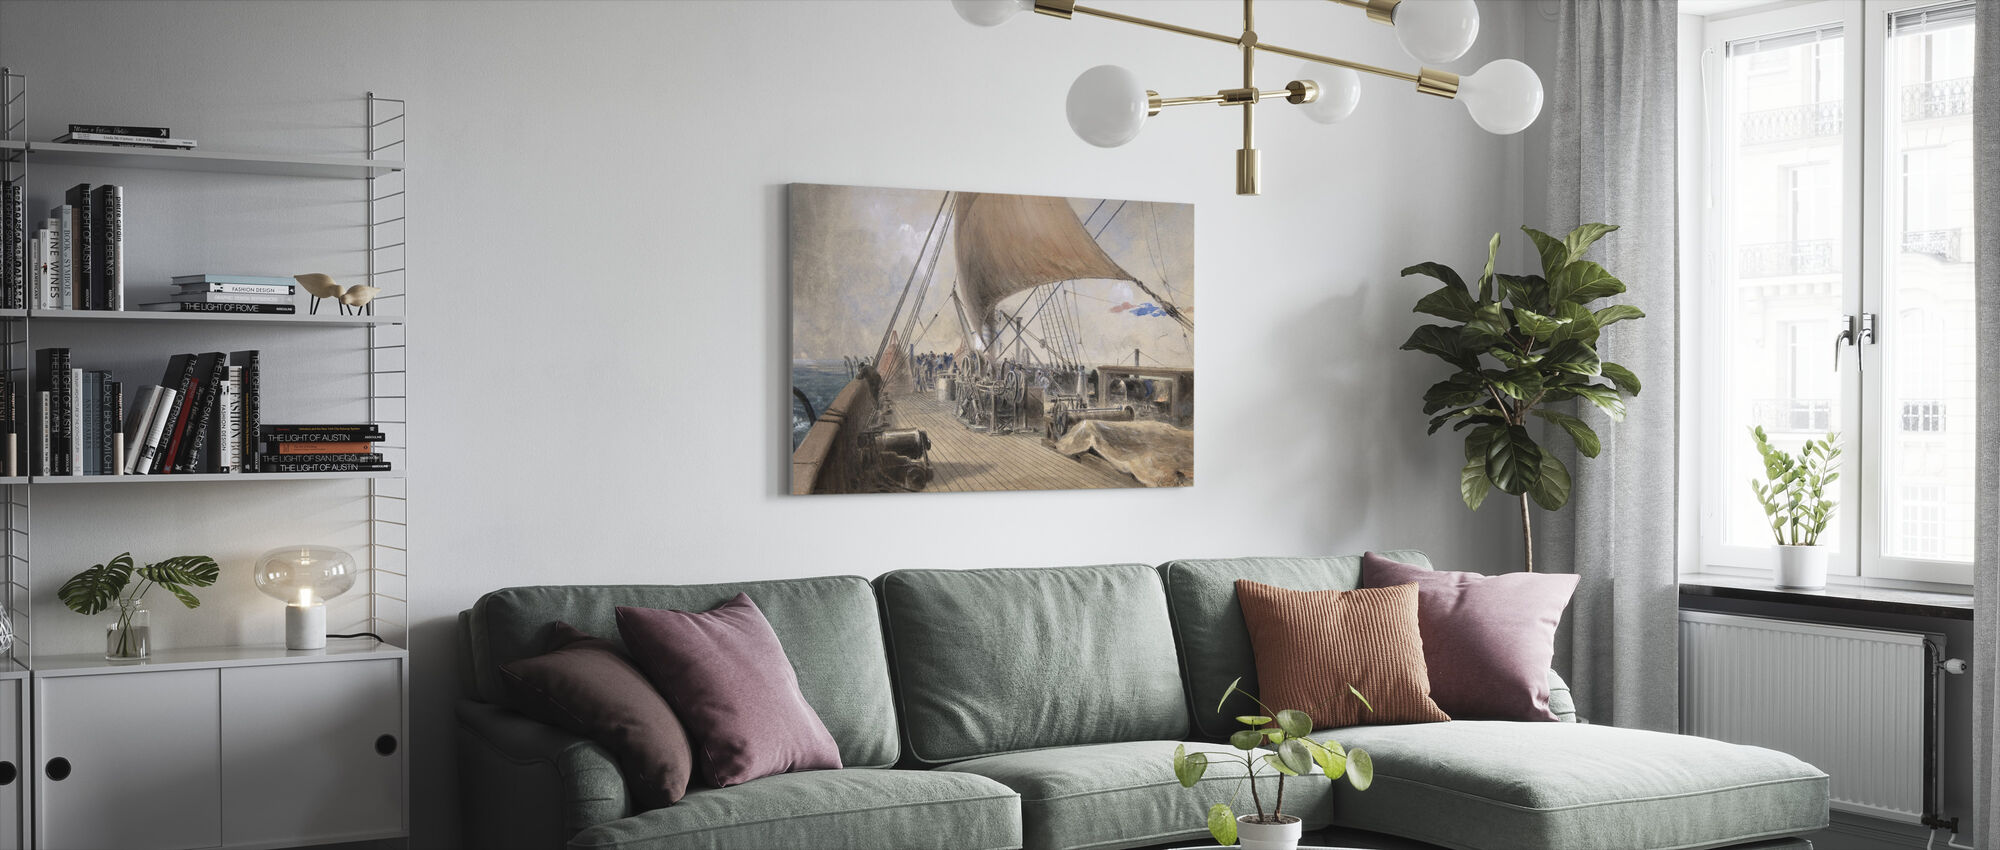 Machinery in the Bows - Robert Charles Dudley - Canvas print - Living Room